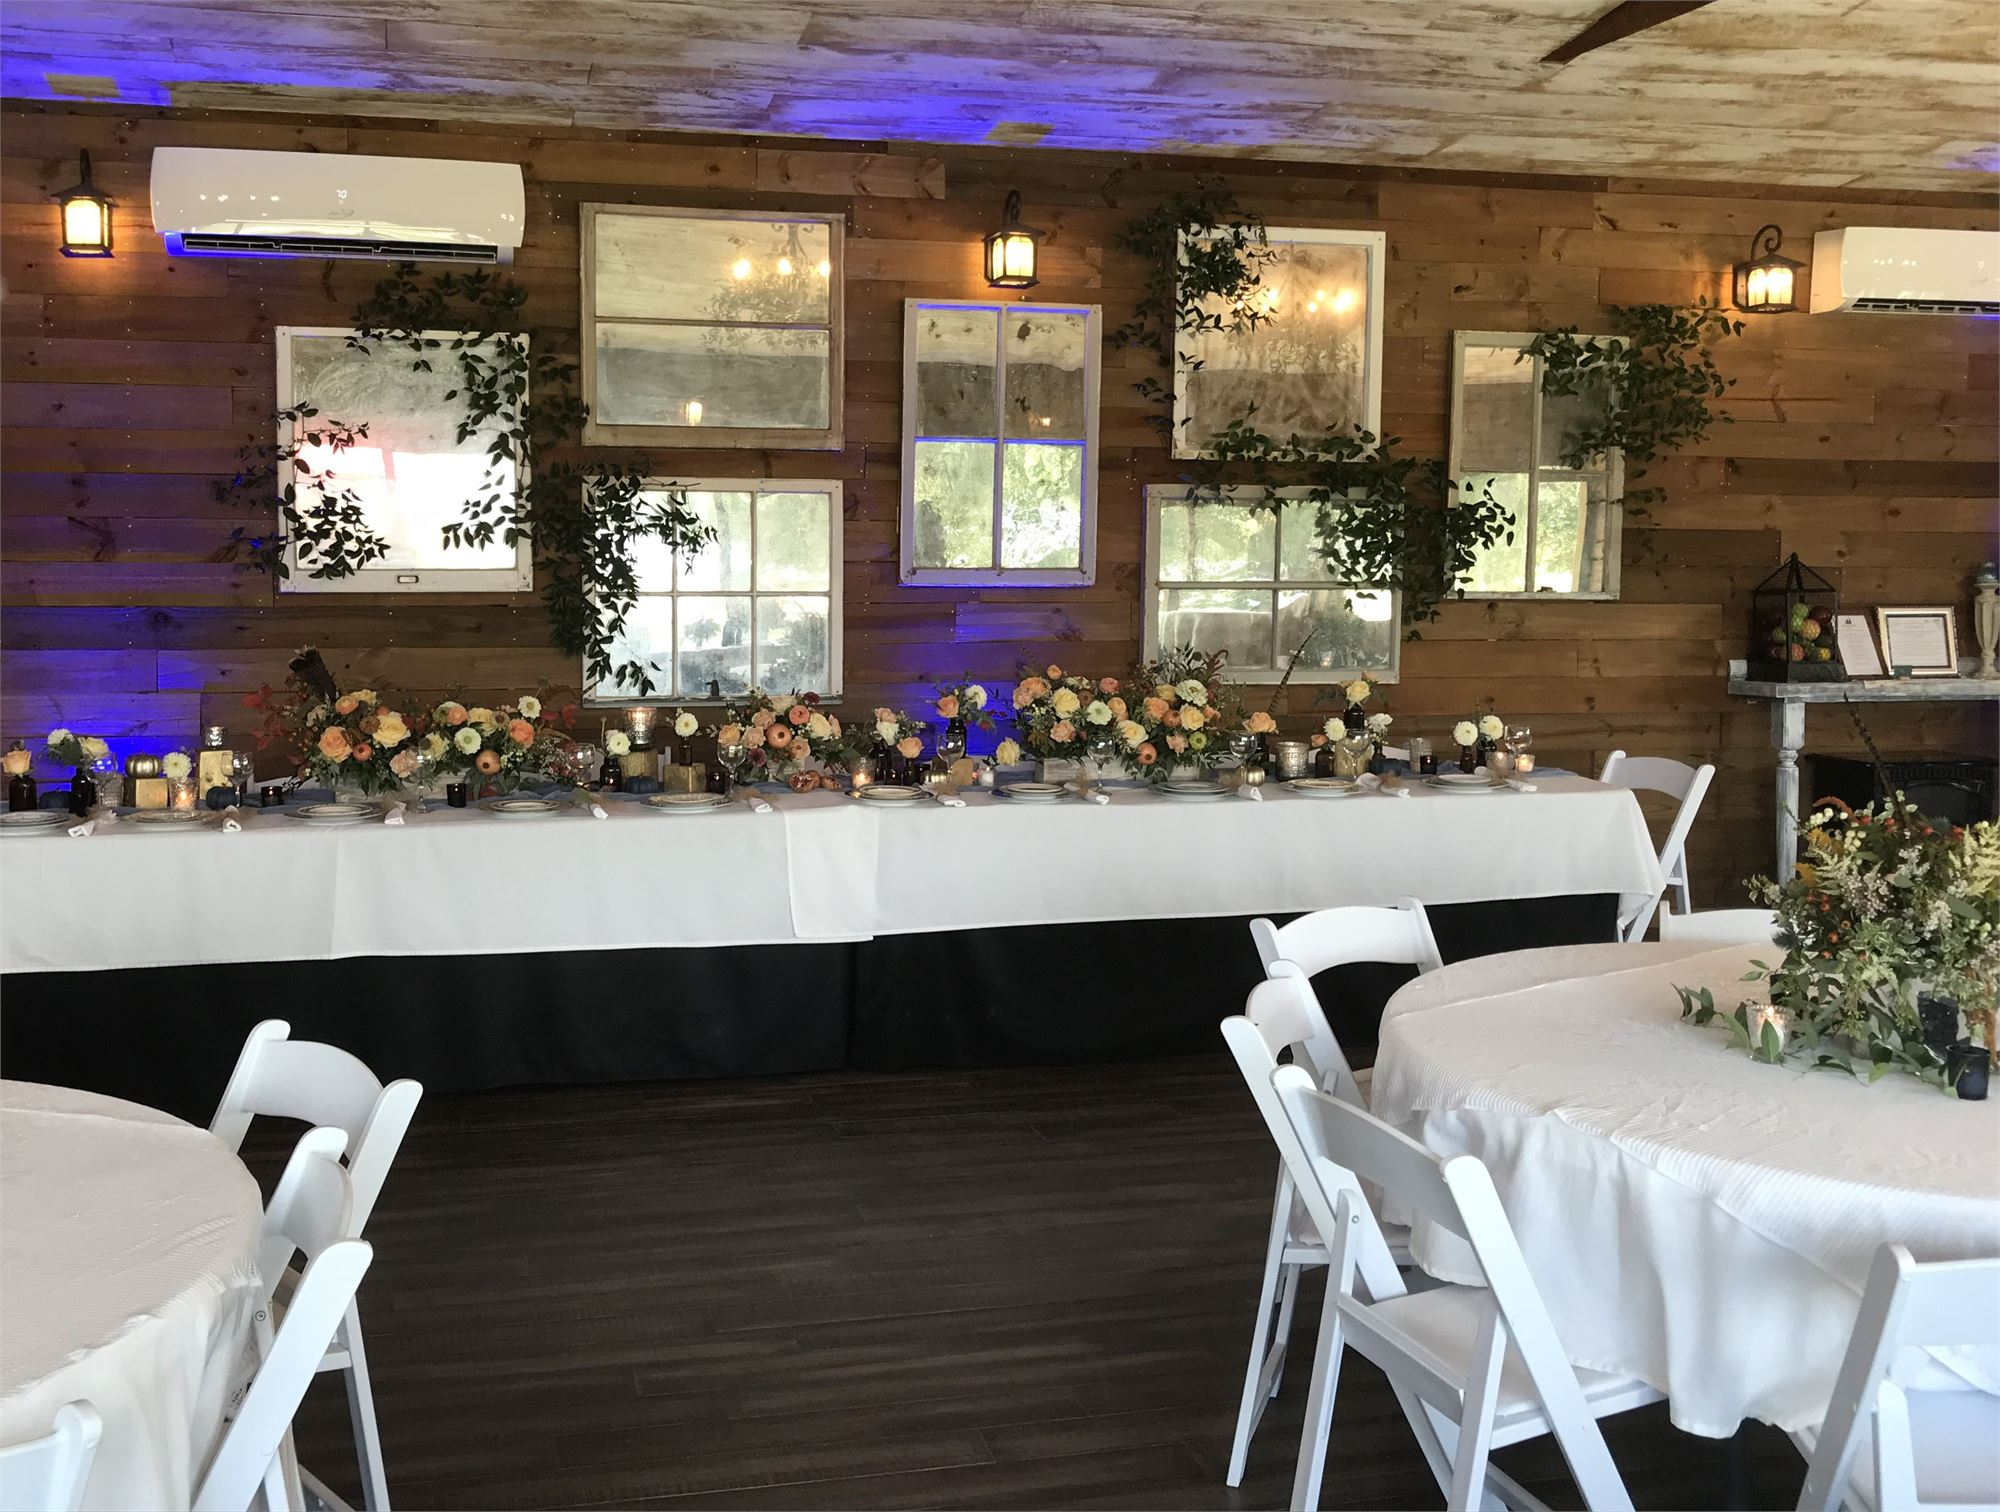 A banquet hall set up with florals on a long table.